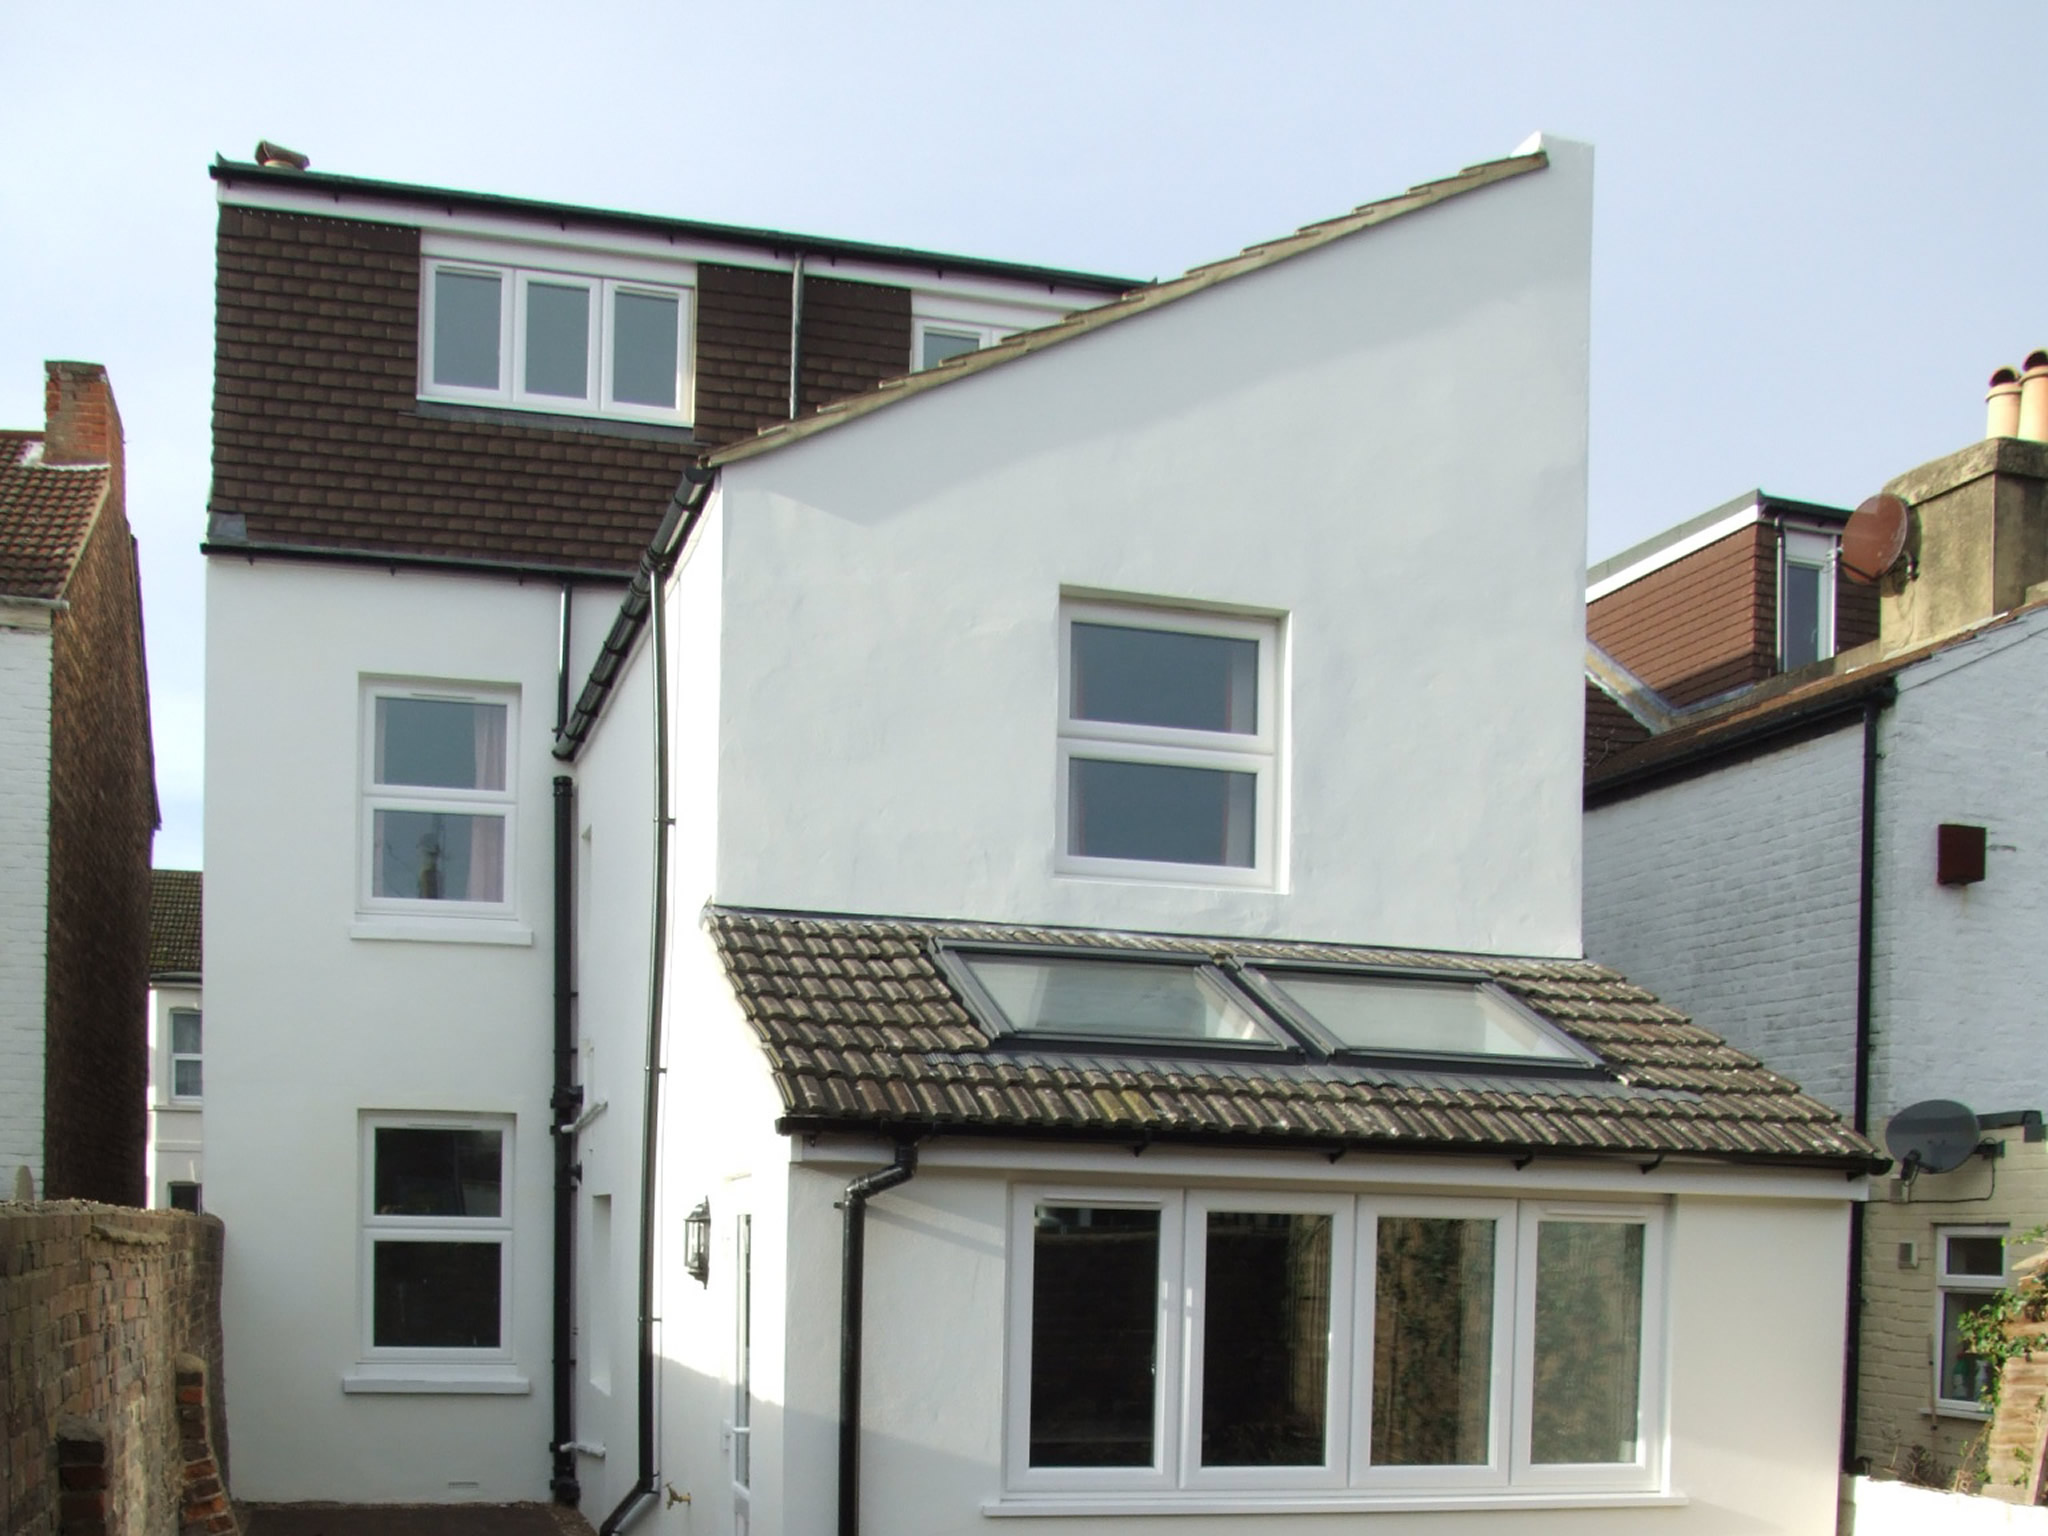 The rear of a newly renovated detached house